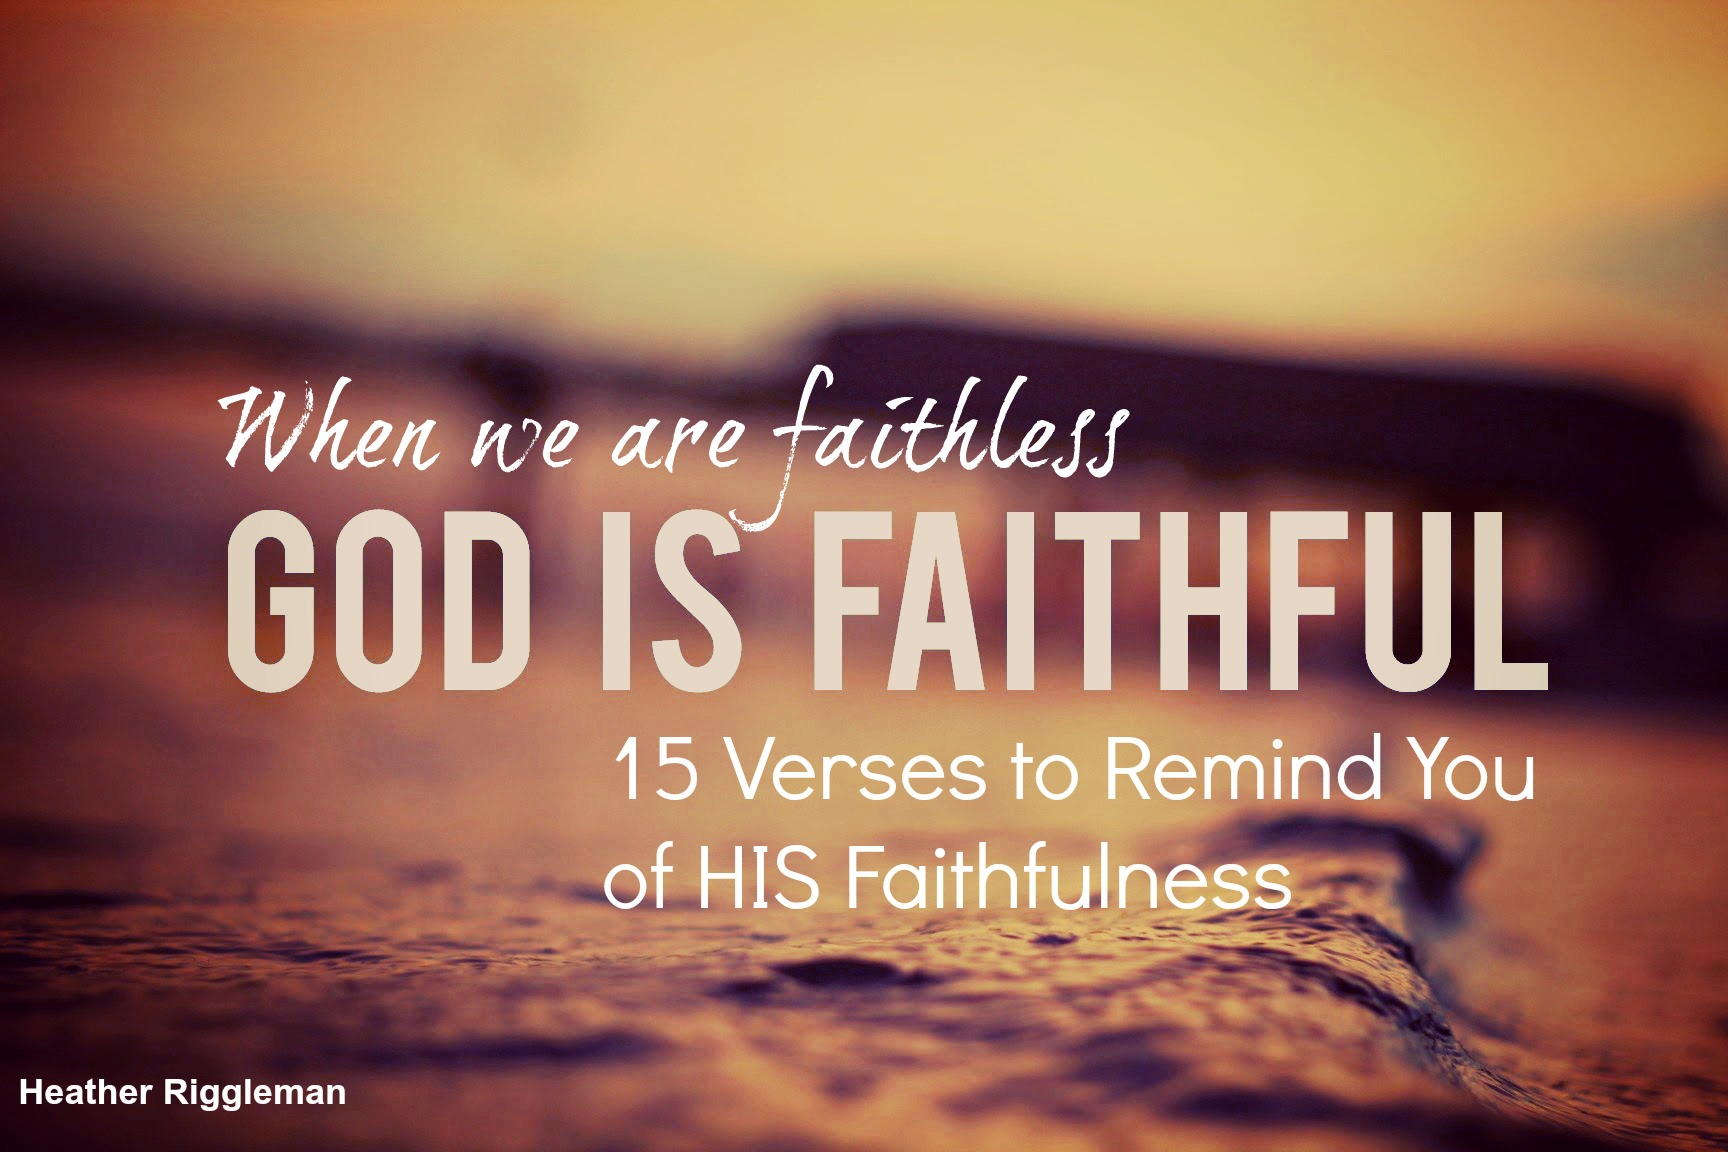 15 verses of Gods faithfulness